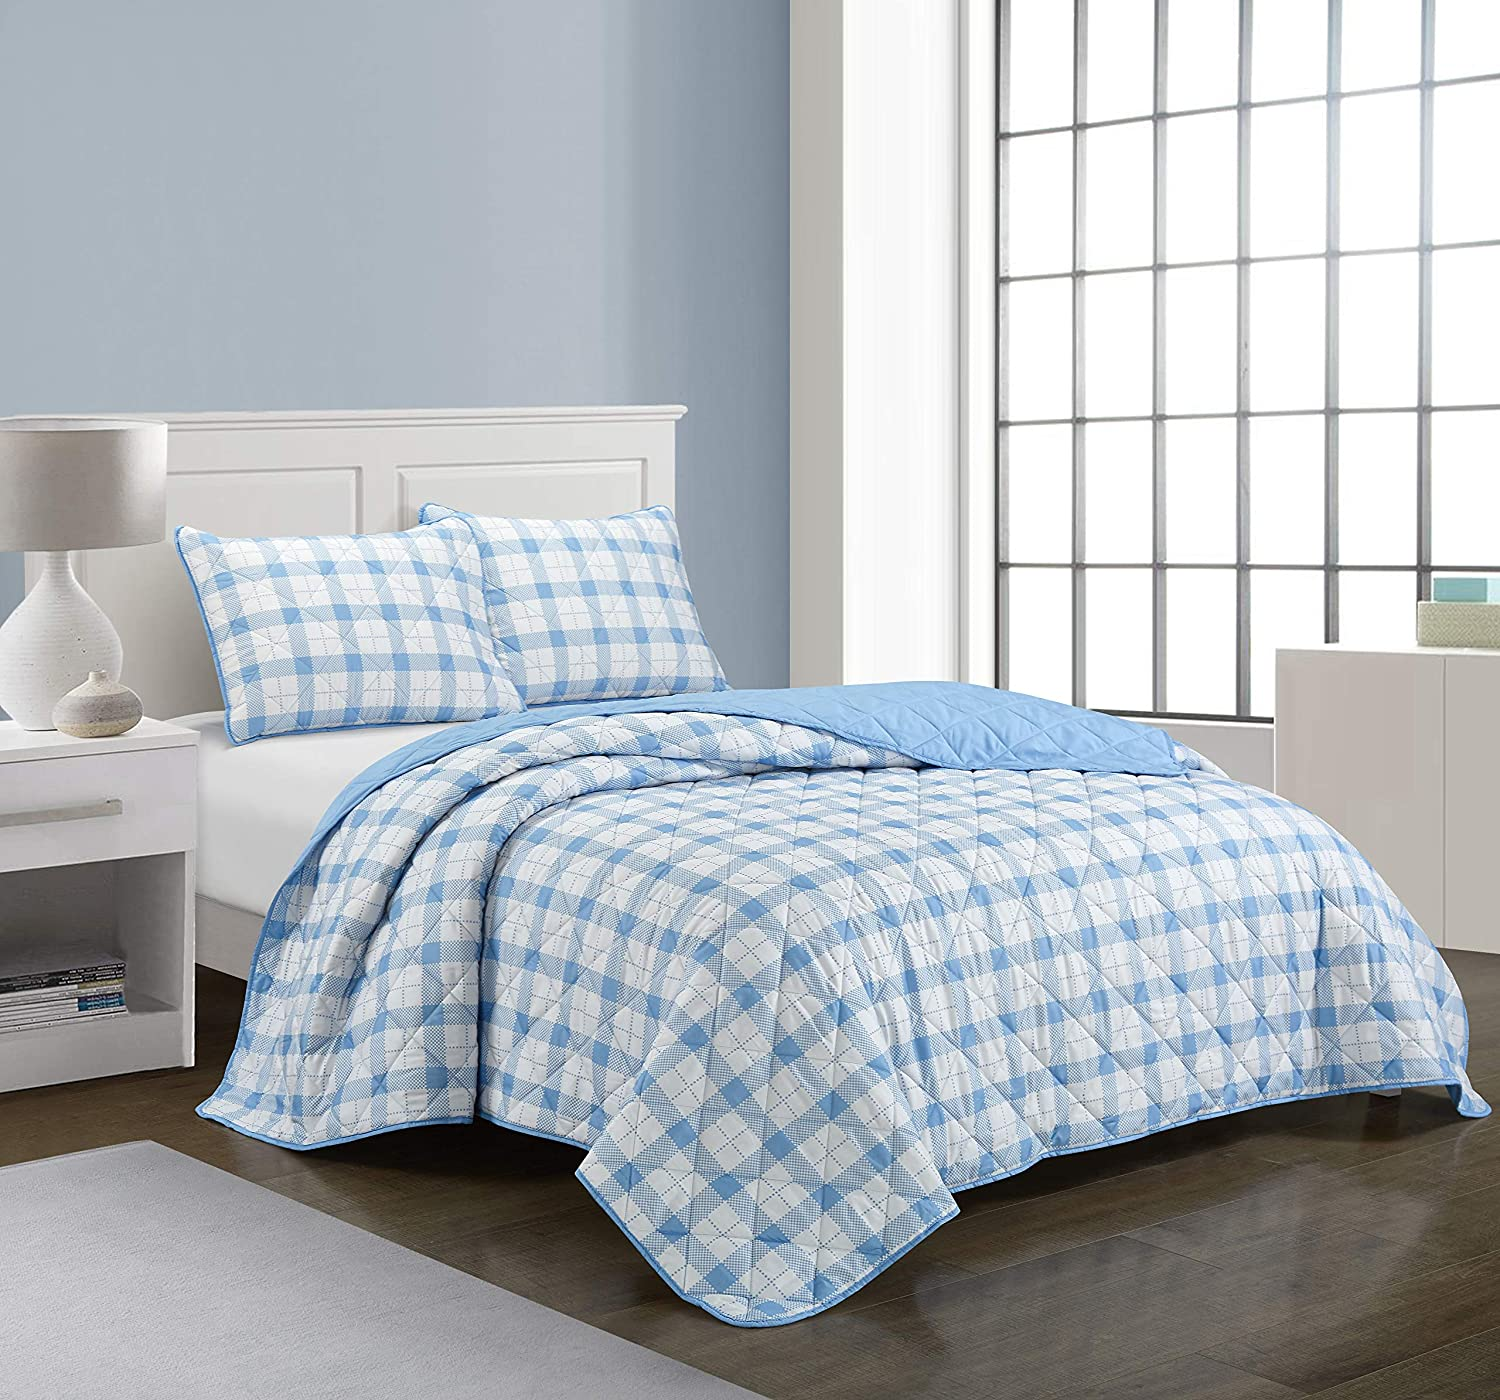 Casa Dottie All Season Machine Washable Alternative Reversible Gingham Buffalo Check Ultra Soft Lightweight Microfiber Quilt Set, Twin XL, Blue